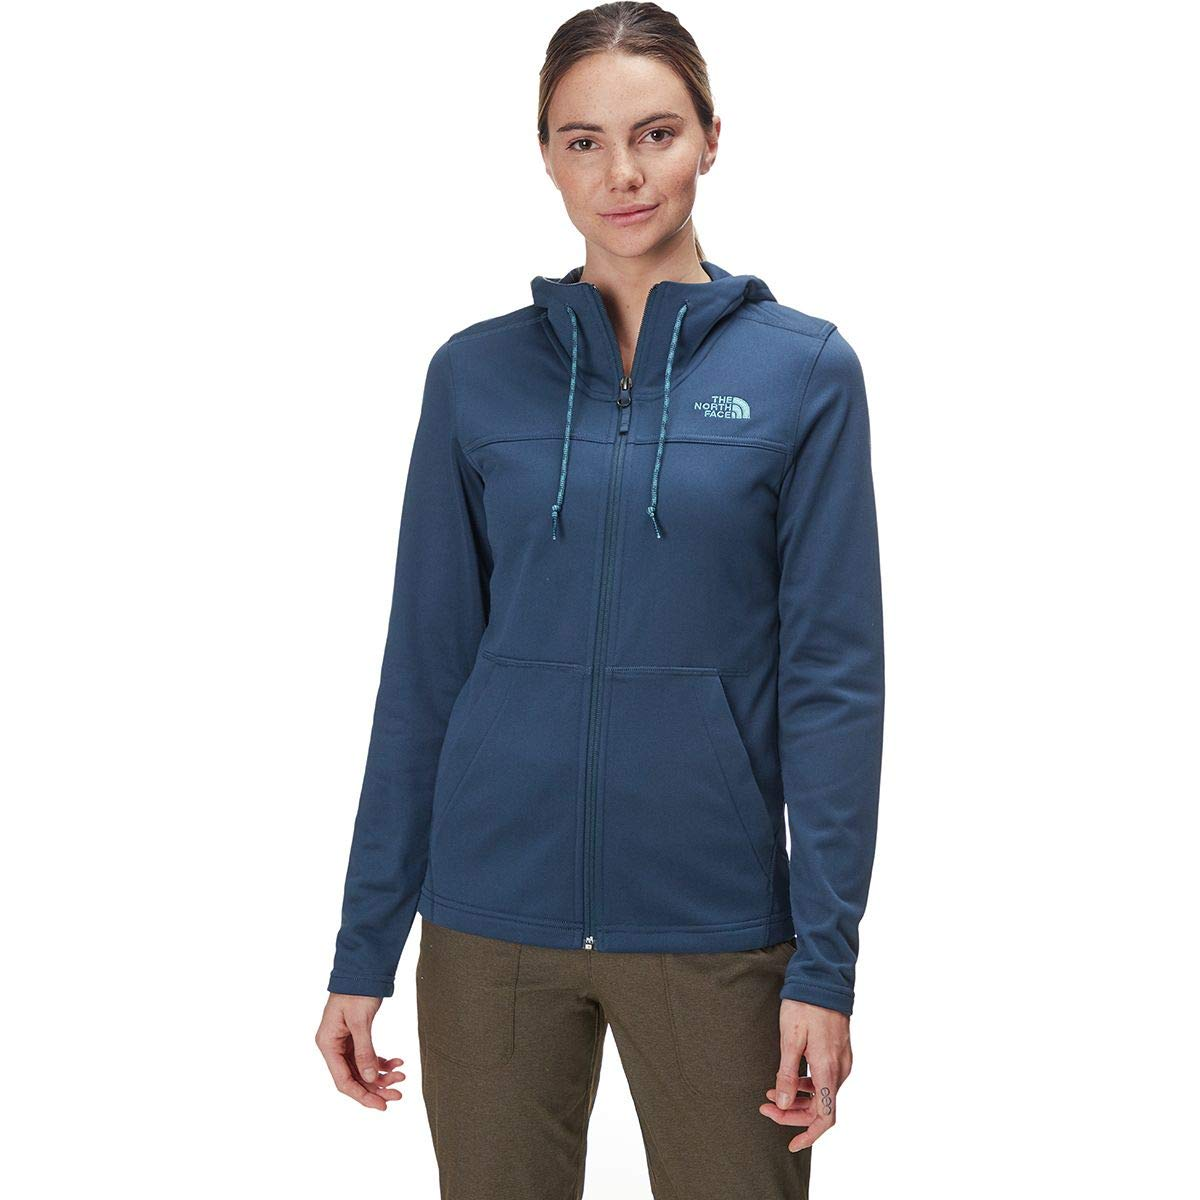 blueee Wing Teal blueee Wing Teal X-Small The North Face Women's TECH MEZLUNA Hoodie